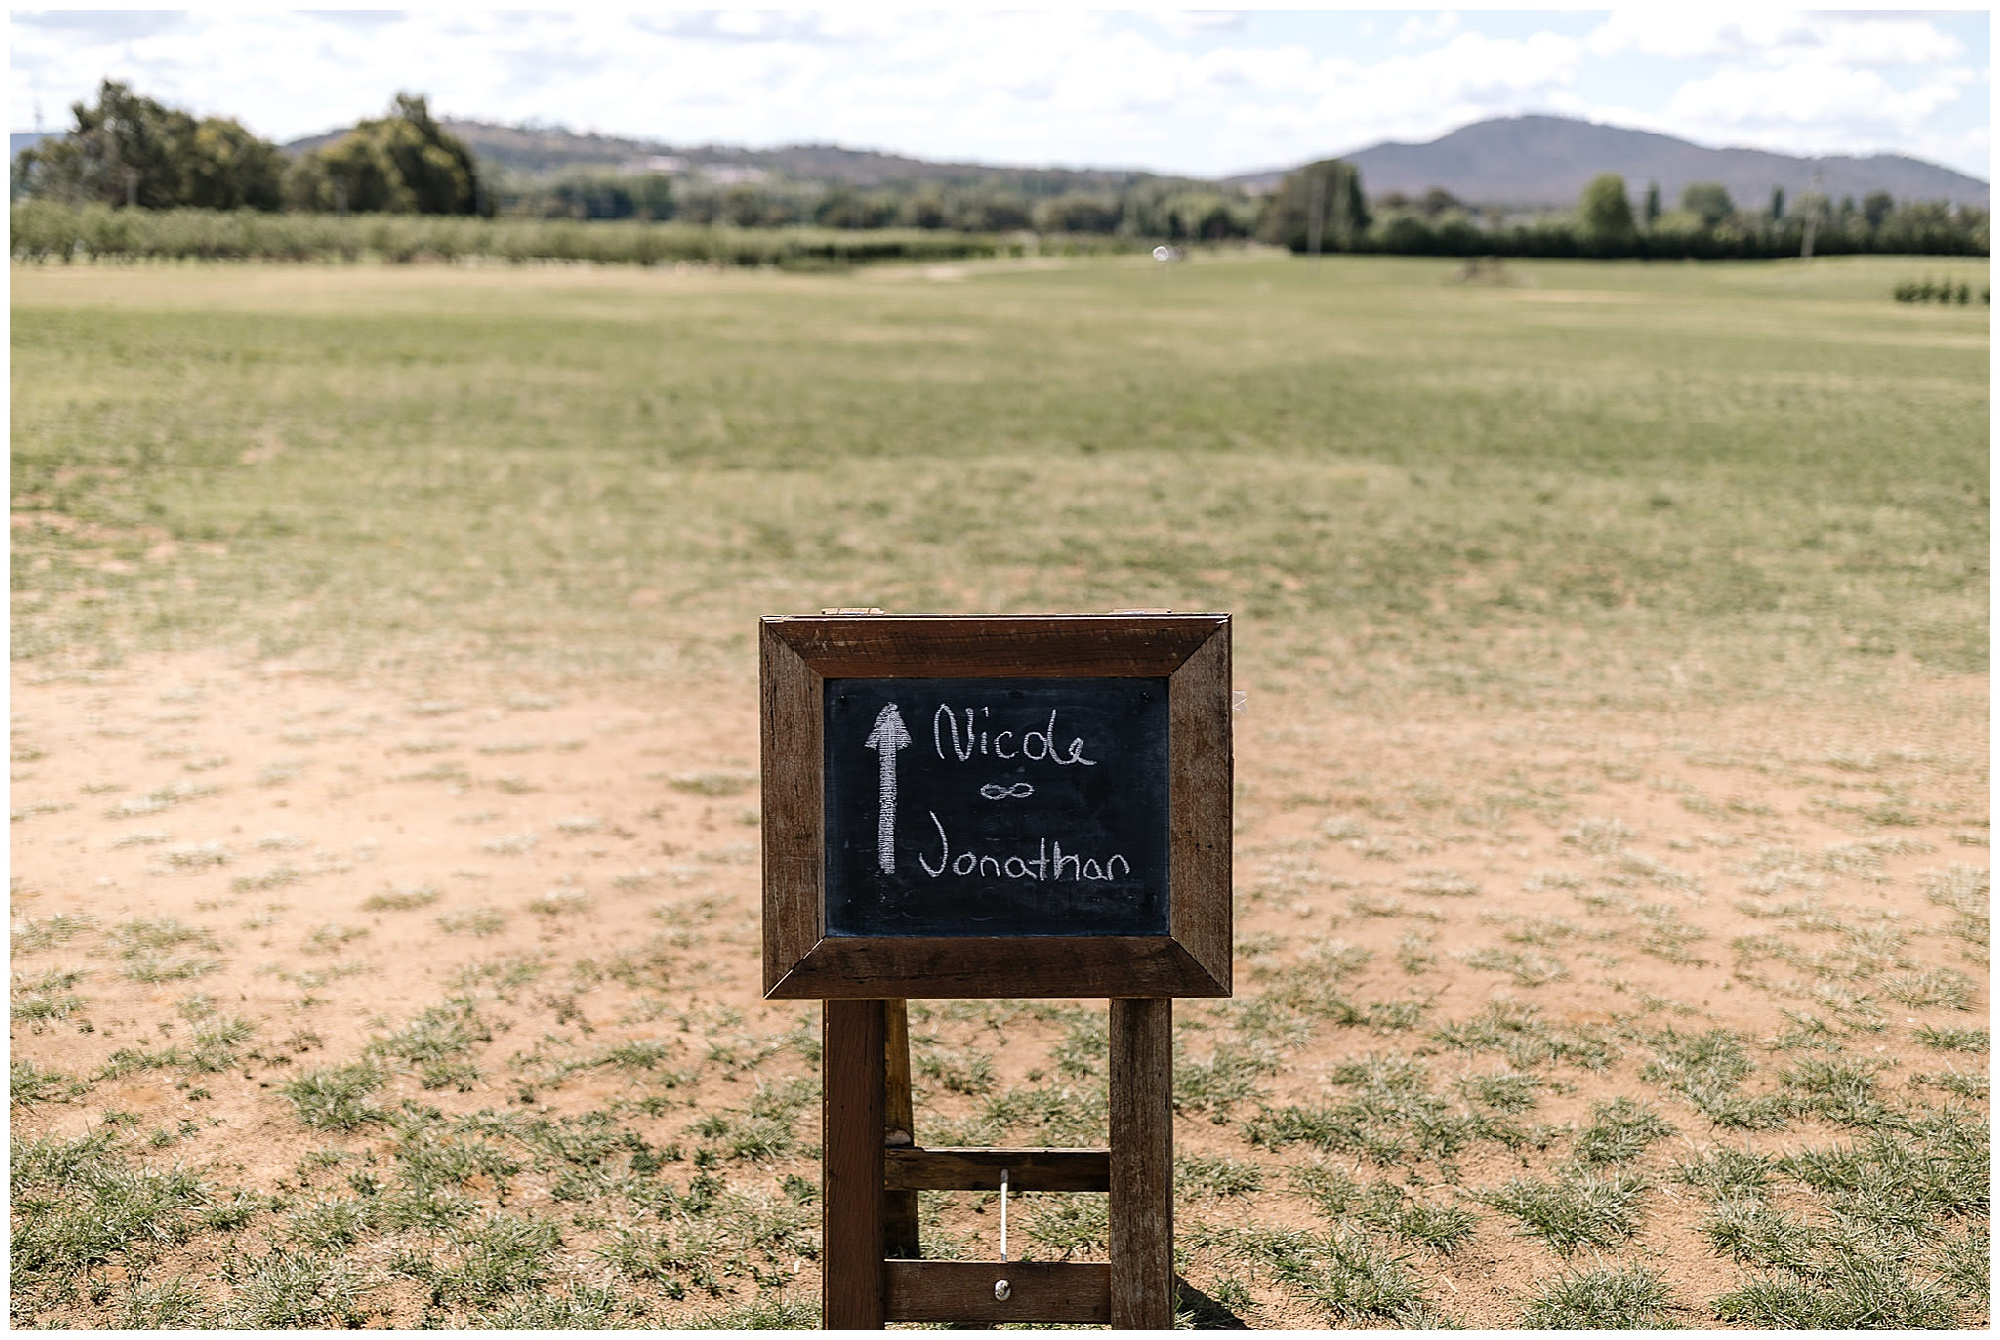 pialligo estate,Pialligo estate wedding,barton flower bar,country wedding,keepsakephoto by the keeffes,canberra wedding photographer,canberra wedding photography,ACT wedding photographer,